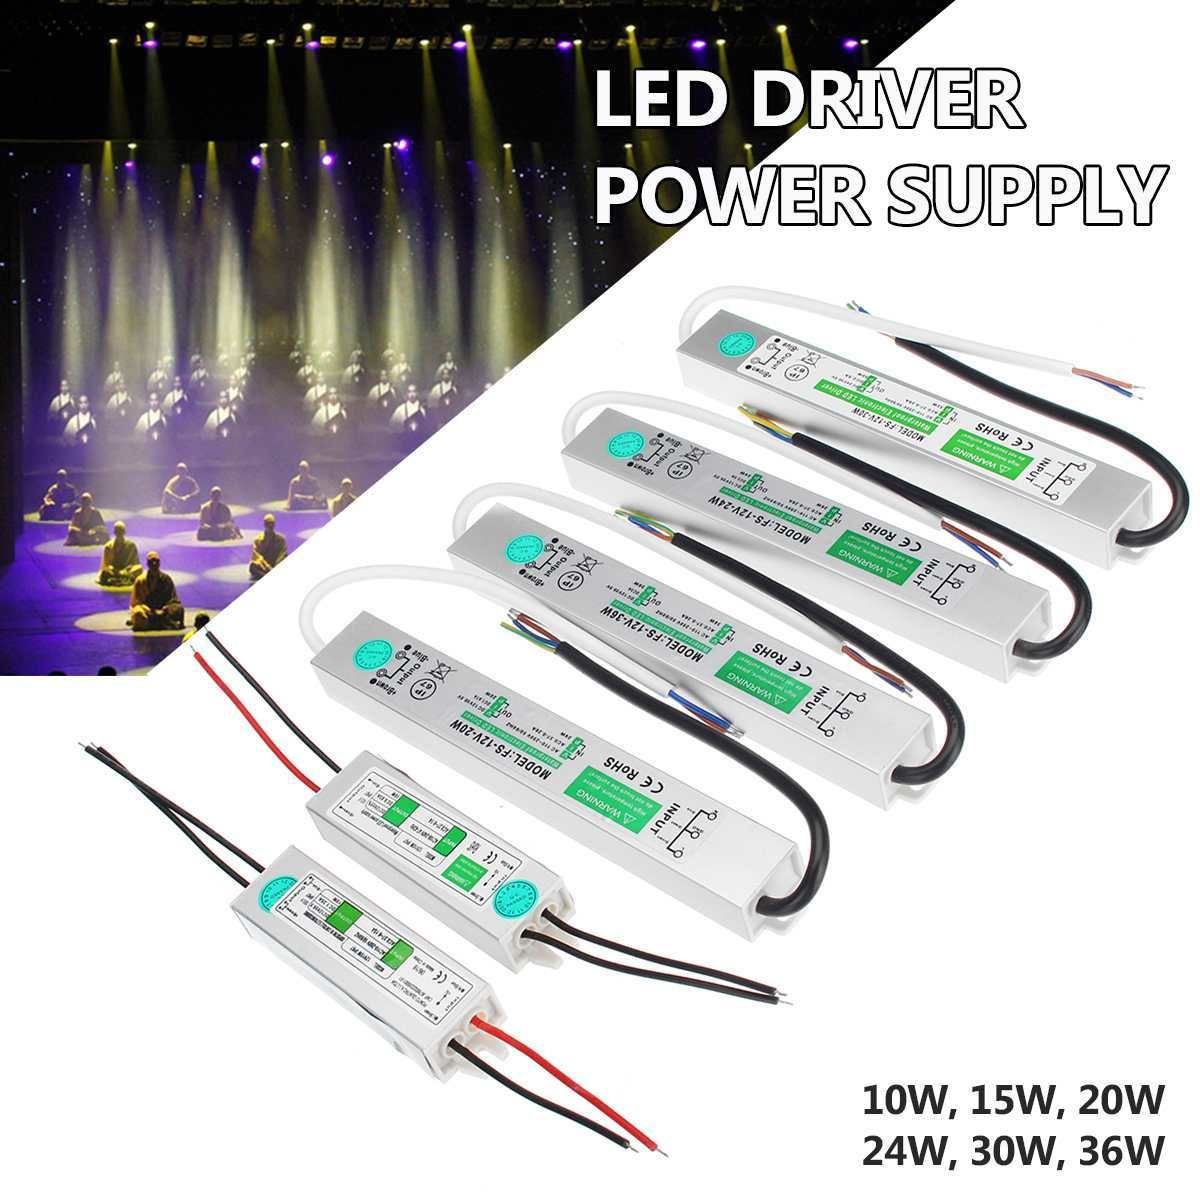 12v 10 15 20 24 30 36w Led Driver Electronic Transformer Power Supply Waterproof Outdoor Led Strip Lamp Ligh Led Drivers Outdoor Led Strips Dimmable Led Lights